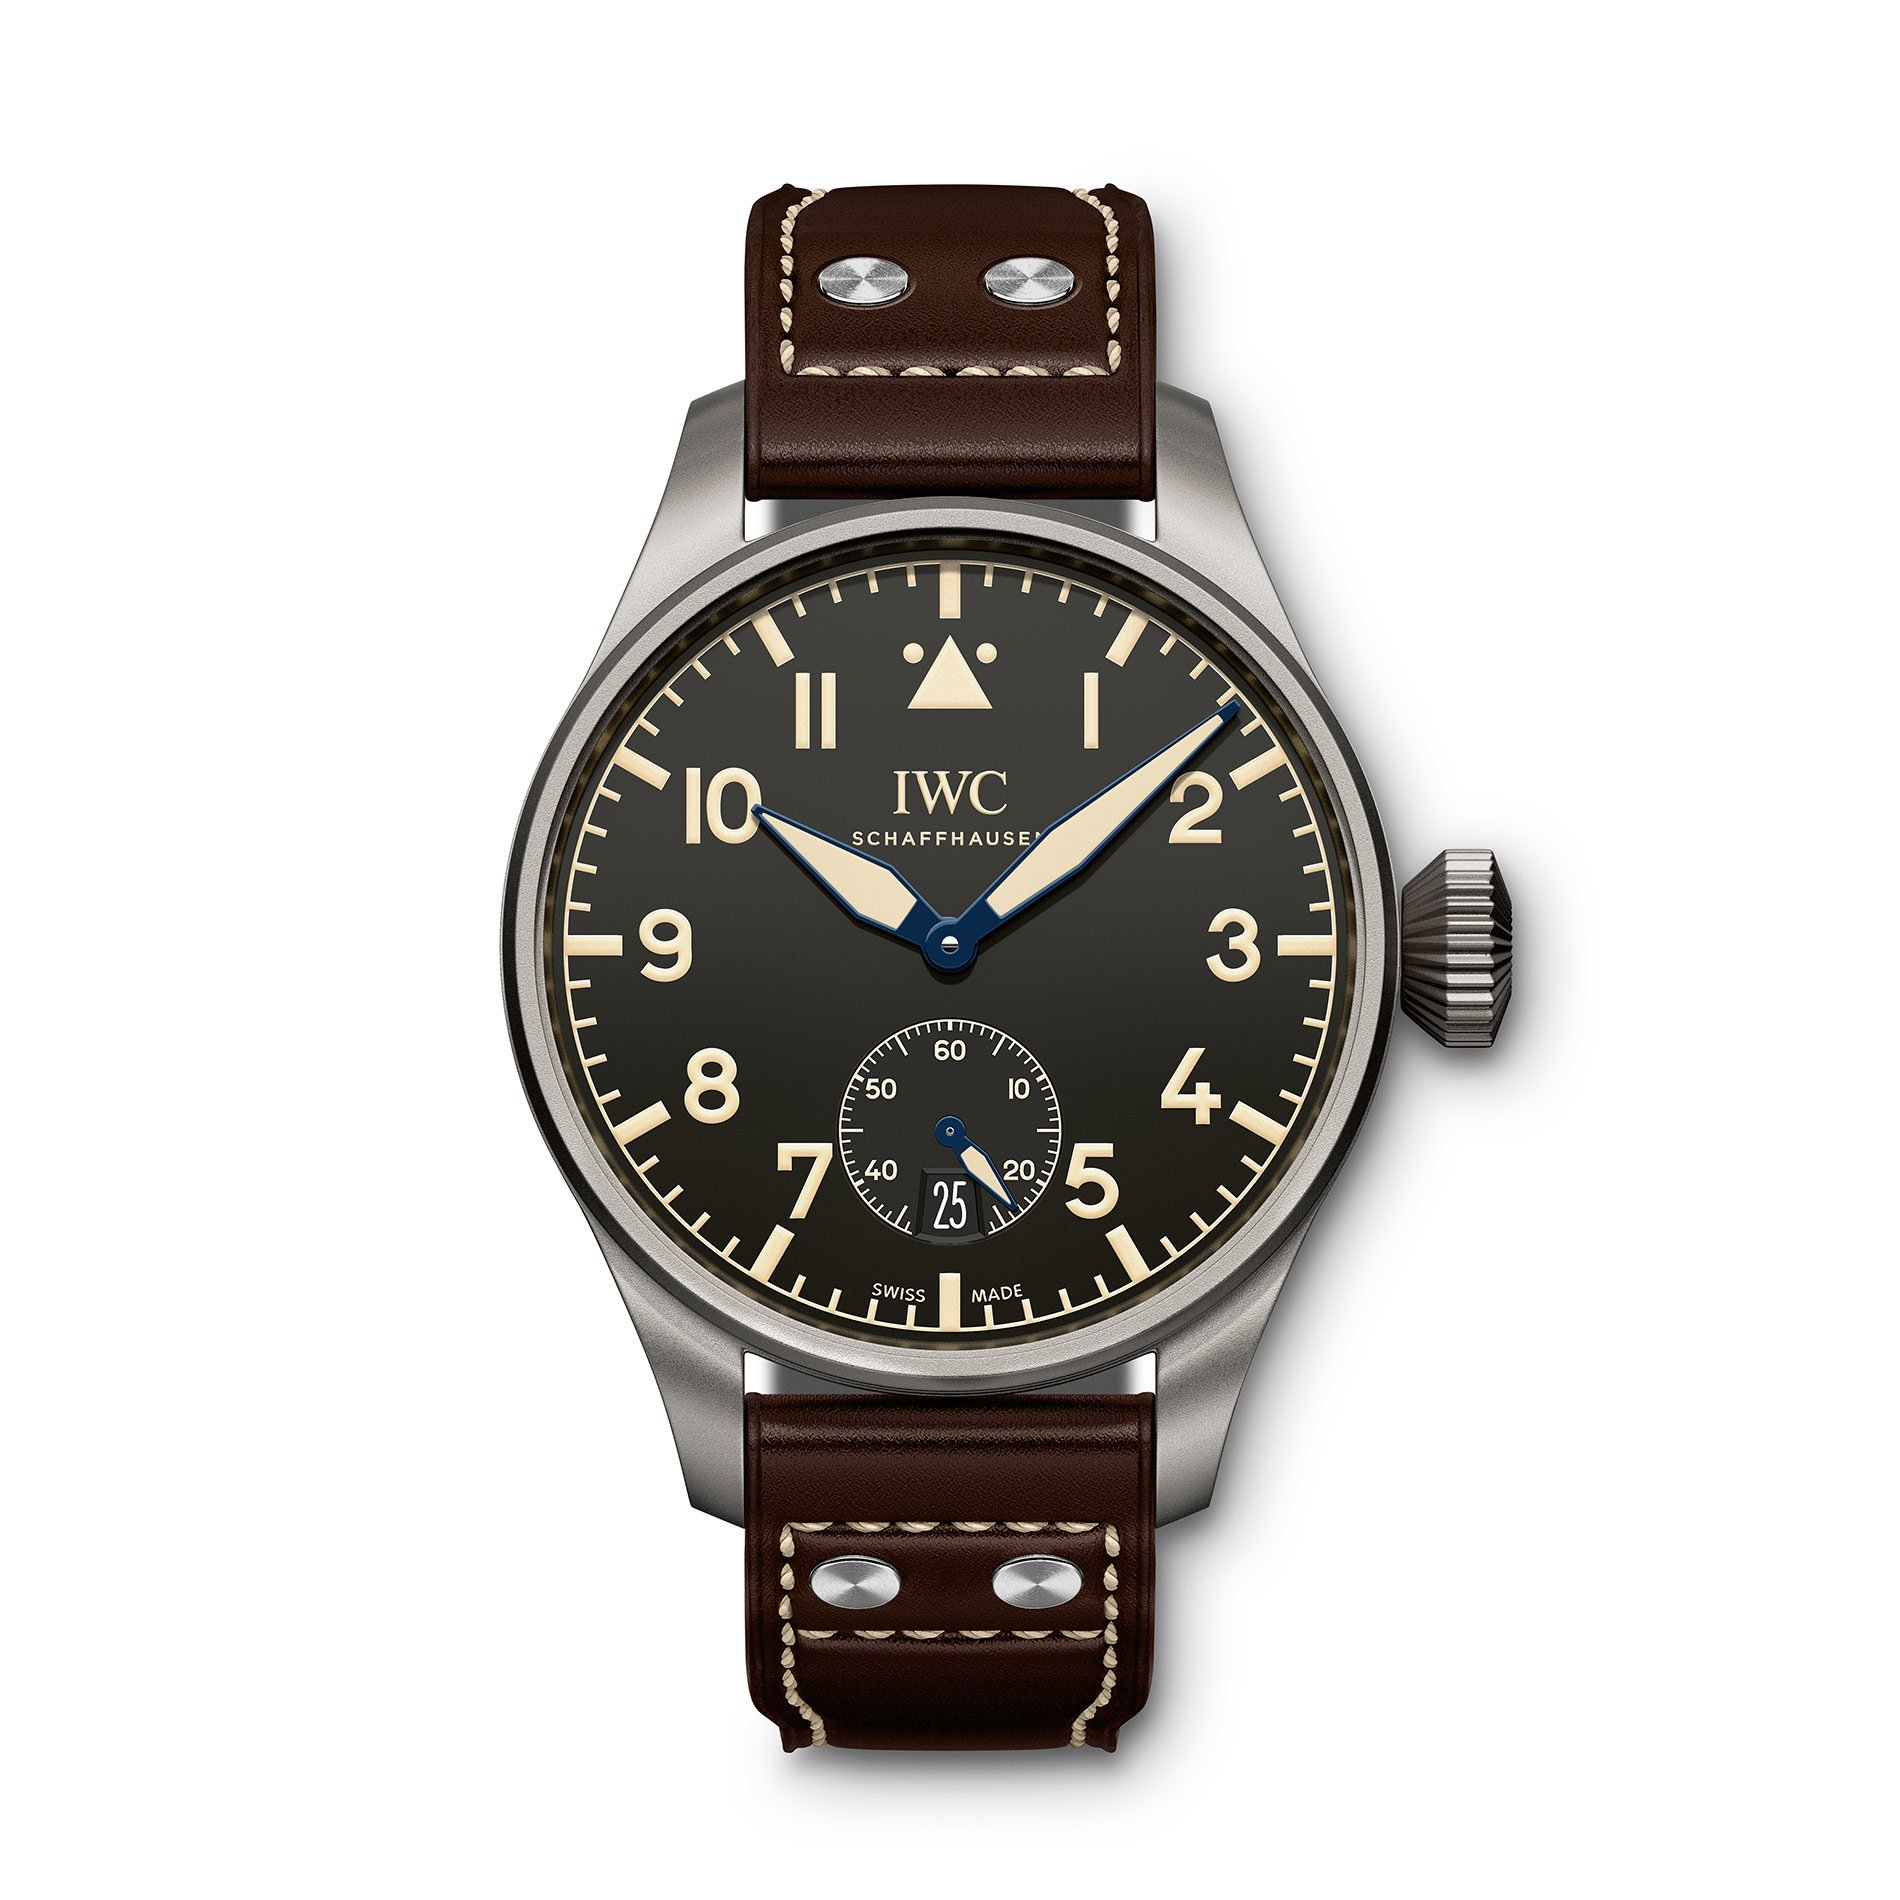 iwc-2016-big-pilot-heritage-watch-limited-edition-5